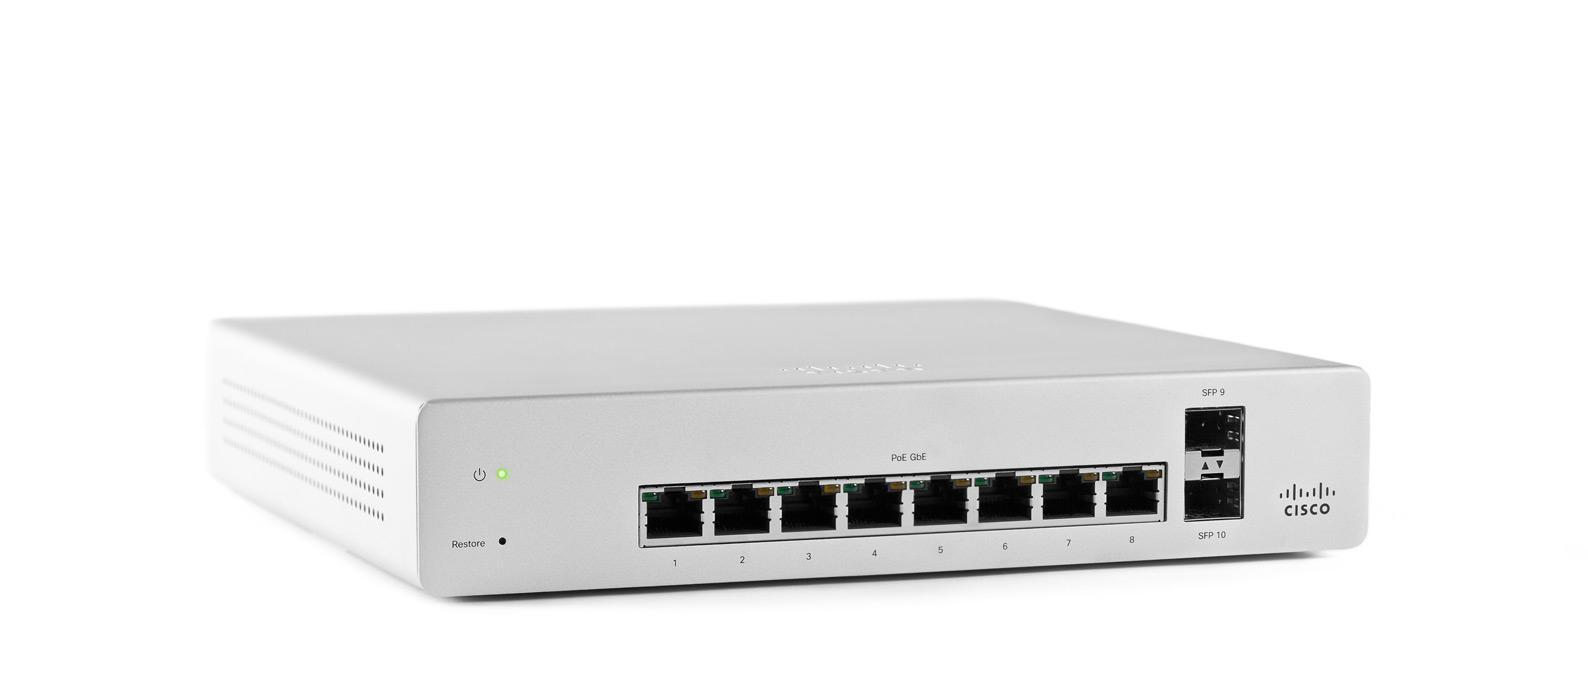 CISCO MS220-8P-HW MERAKI MS220 CLOUD MANAGED 8 PO